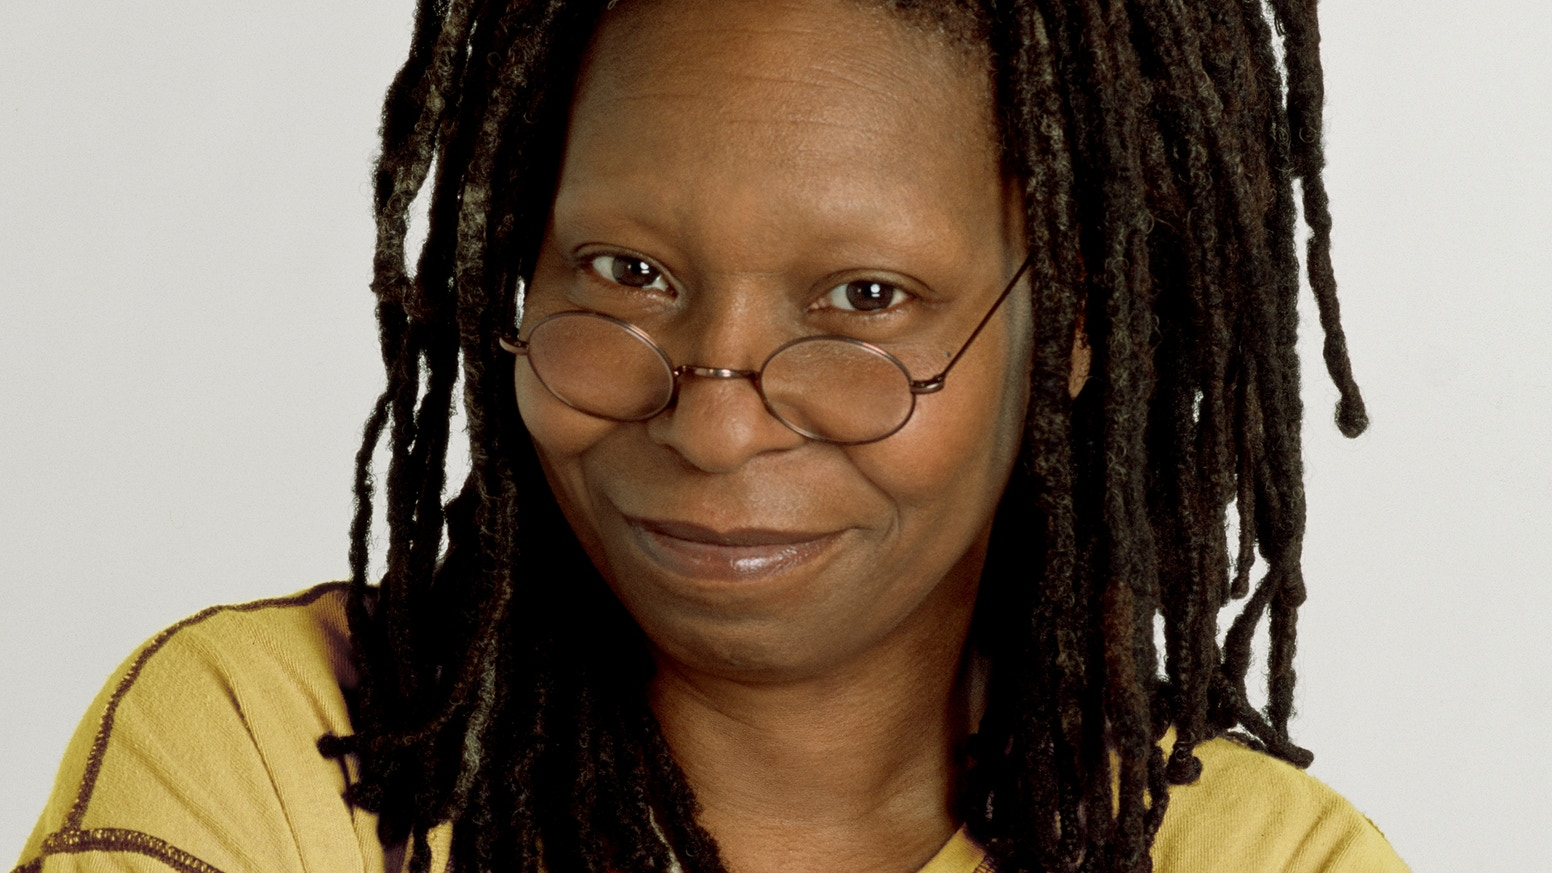 whoopi goldberg - photo #8